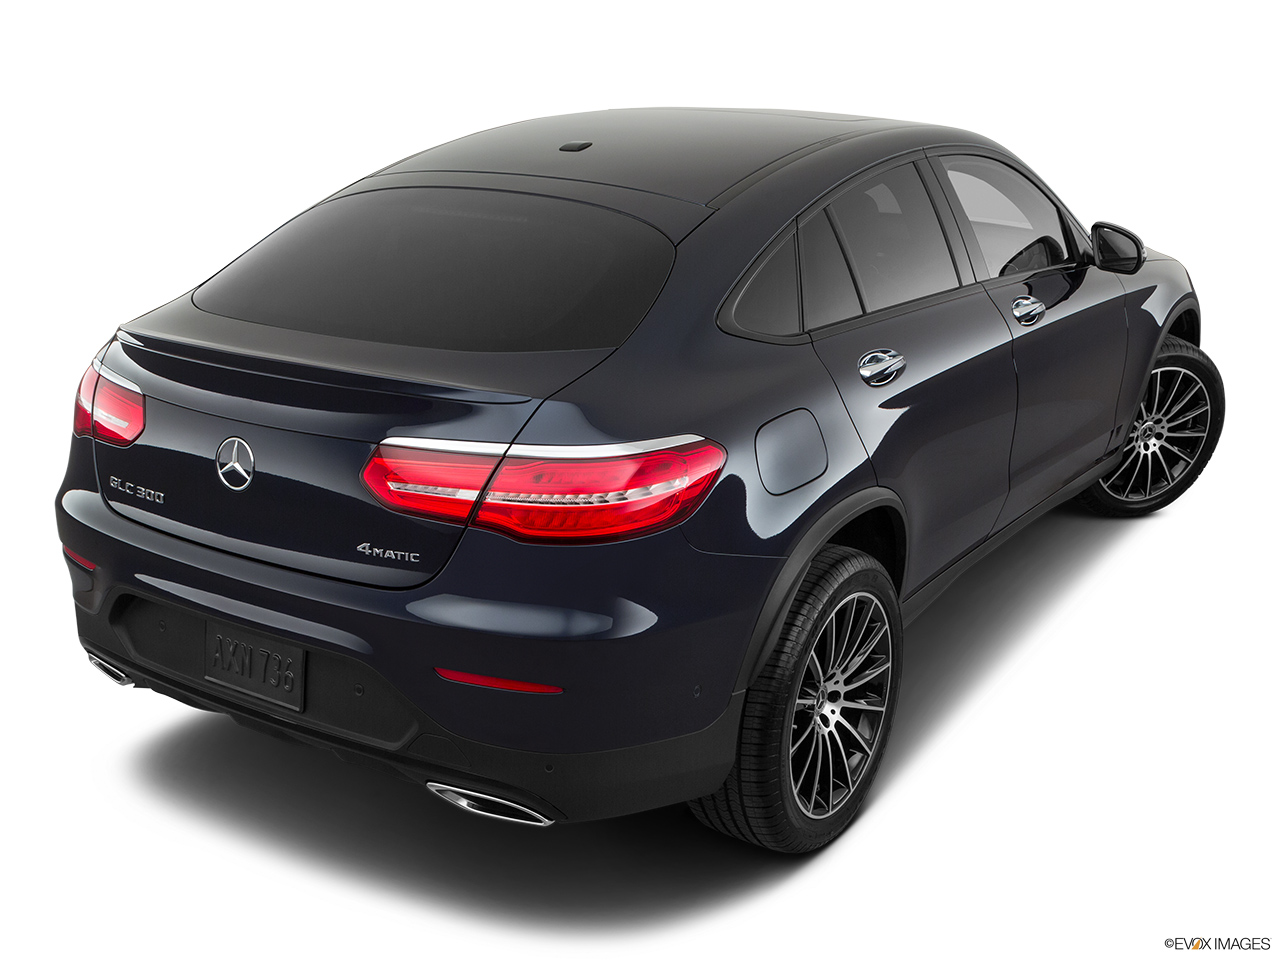 2019 Mercedes-Benz GLC-Class Coupe GLC 300 4MATIC Rear 3/4 angle view.